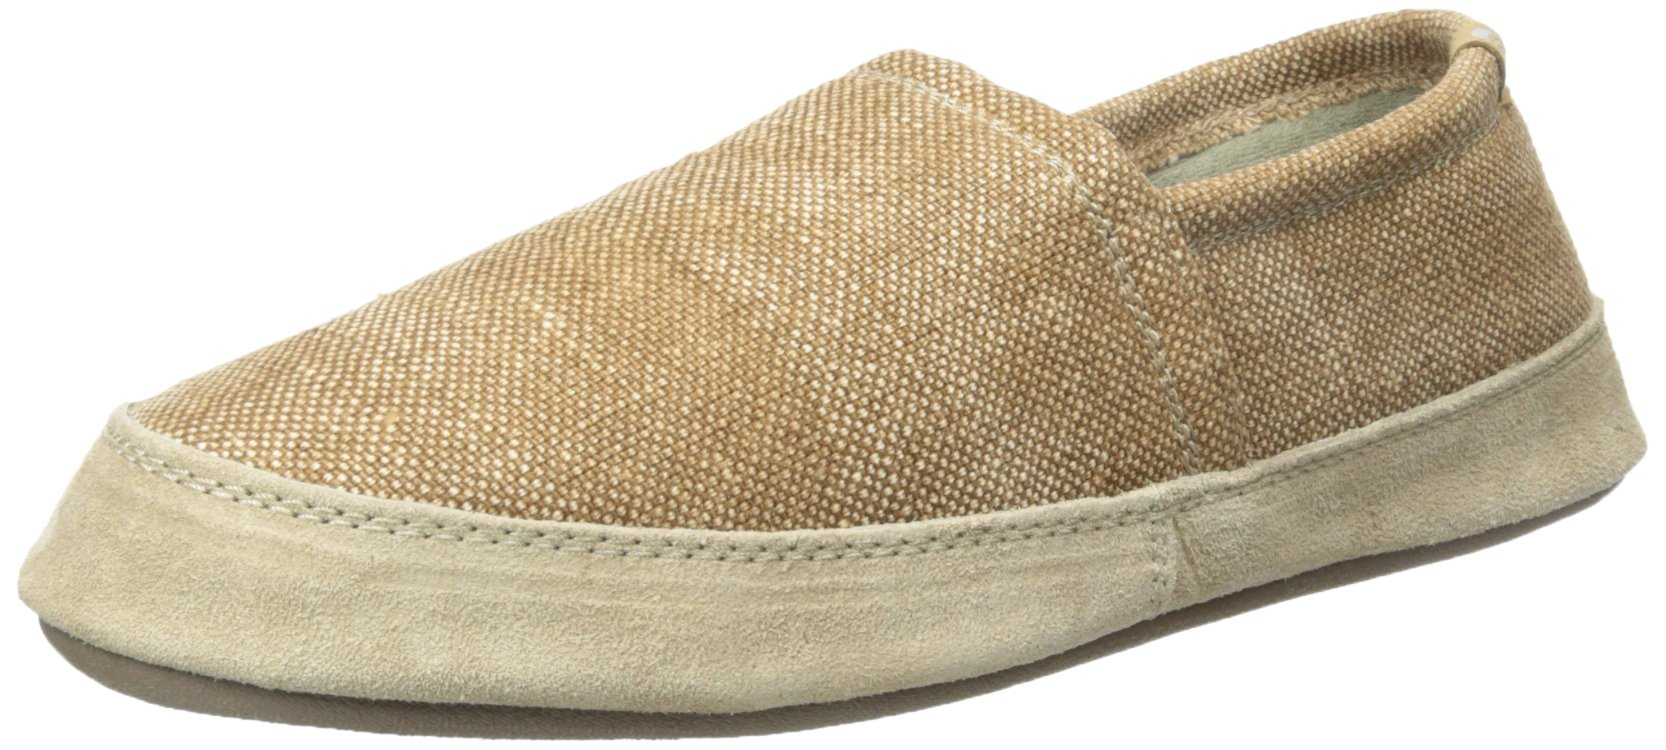 Acorn Men's Summerweight Moc Slipper, Toast Canvas, Medium/9-10 M US by Acorn